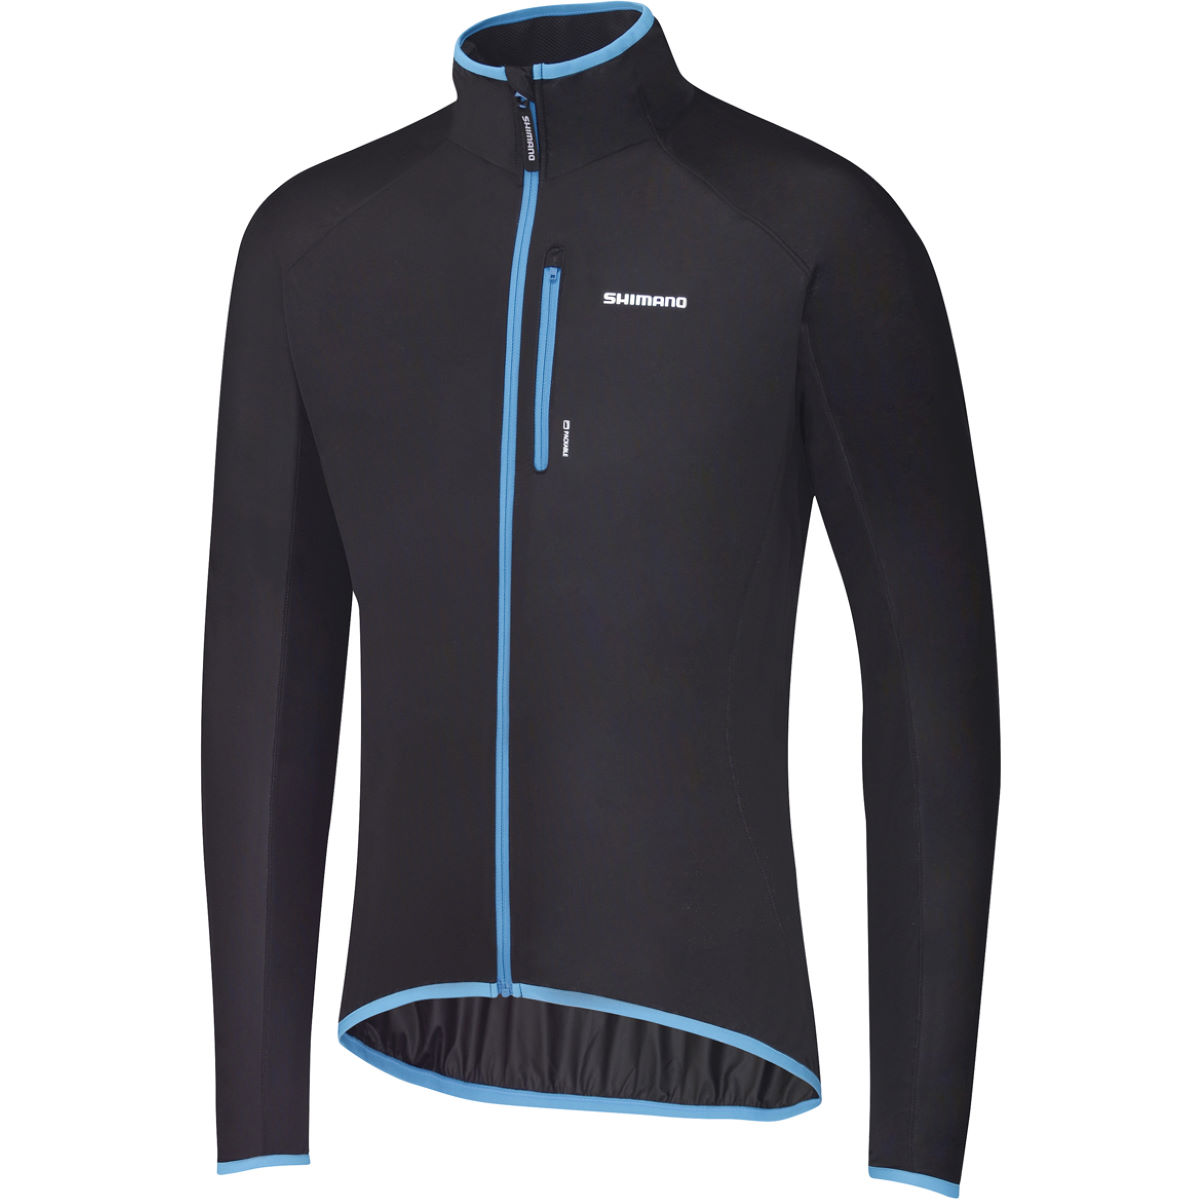 Veste Shimano Windbreak (extensible) - Small Noir/Bleu Vestes